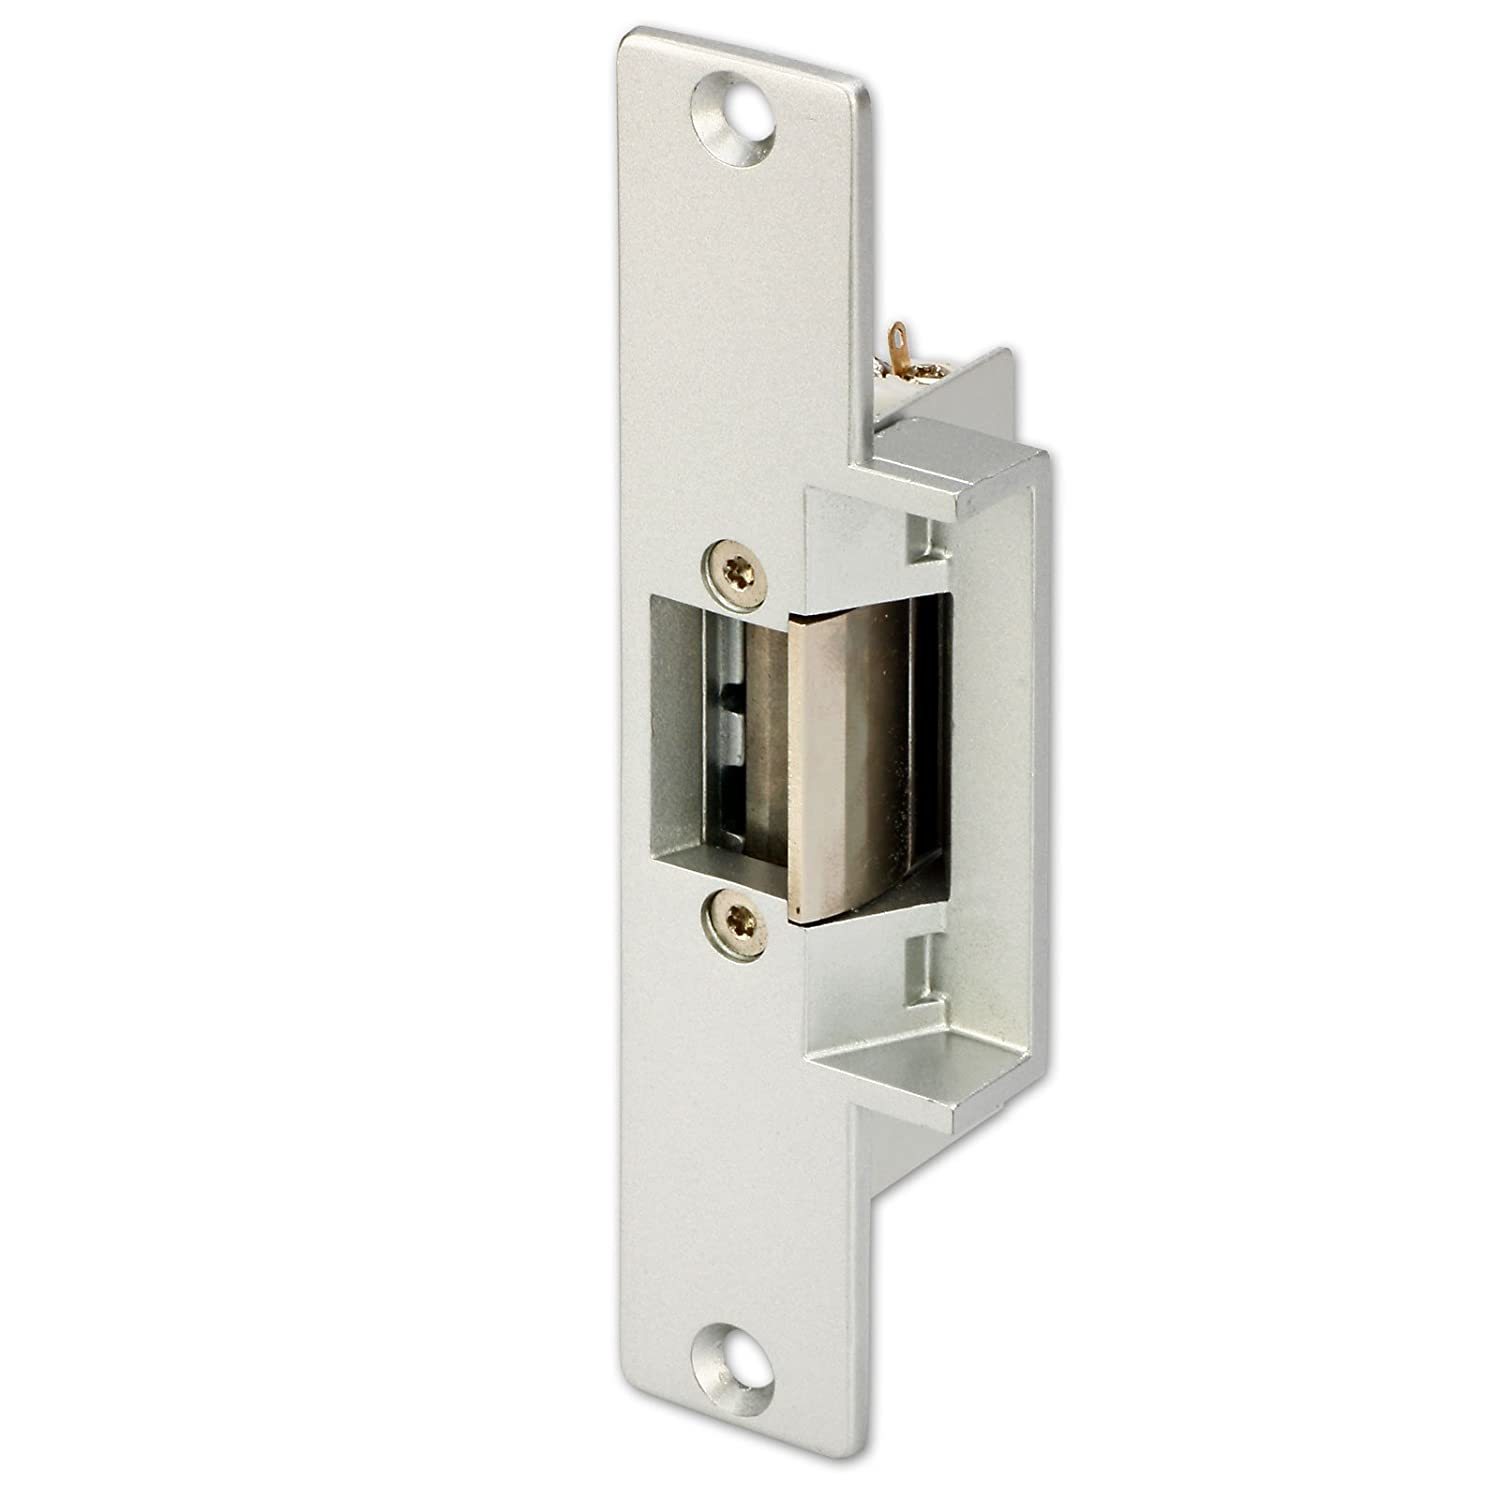 ansi abloy range locks abloycom catalogue product electric strike lock photo door solenoid en oy products